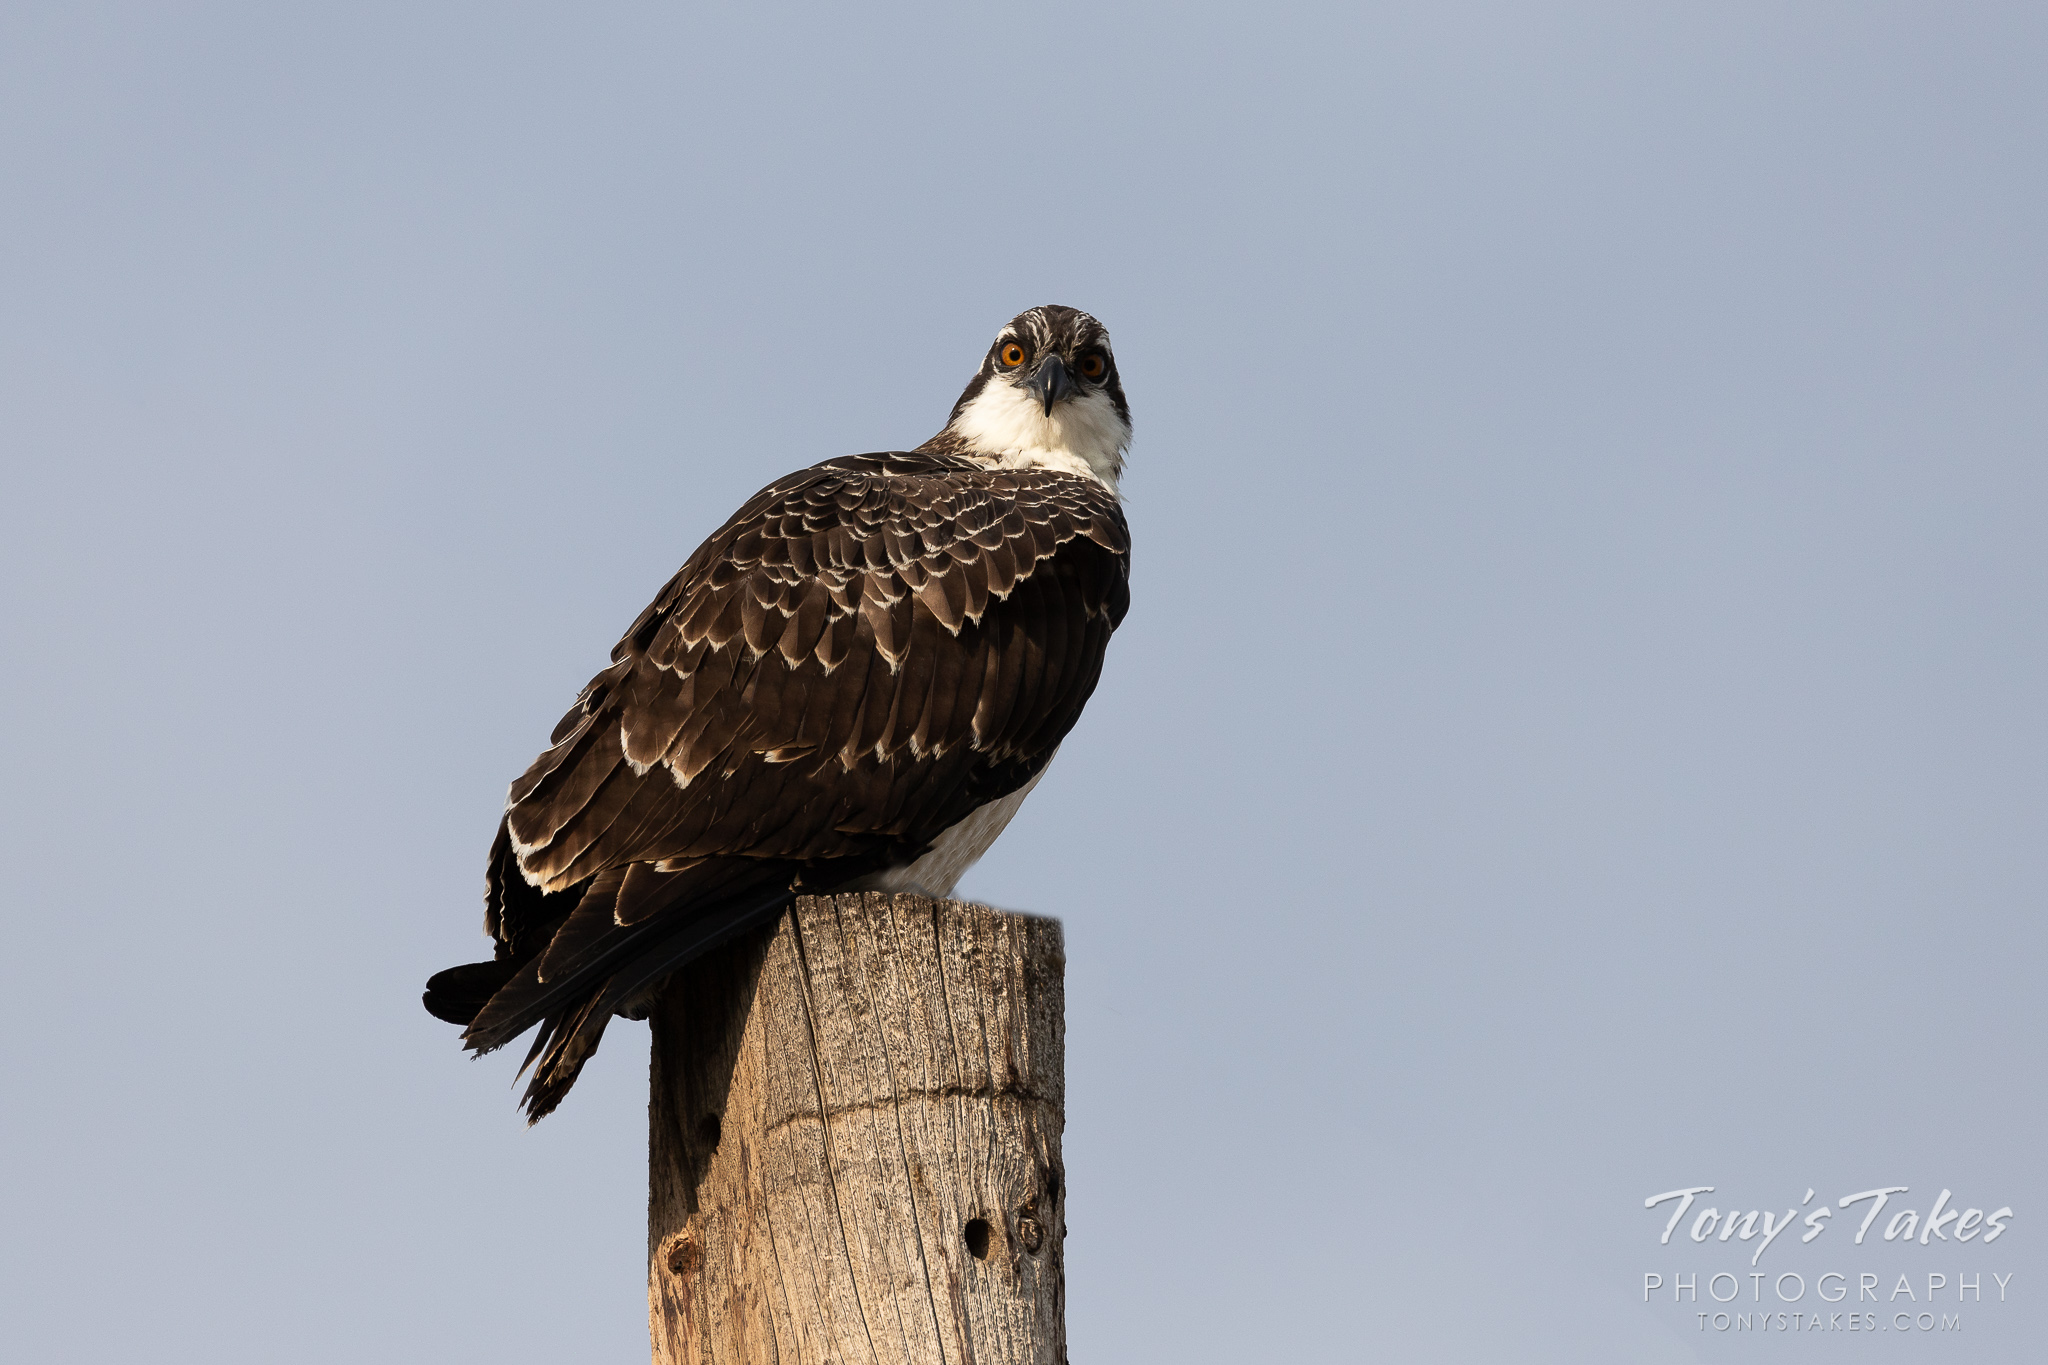 Young Osprey keeping an eye on me